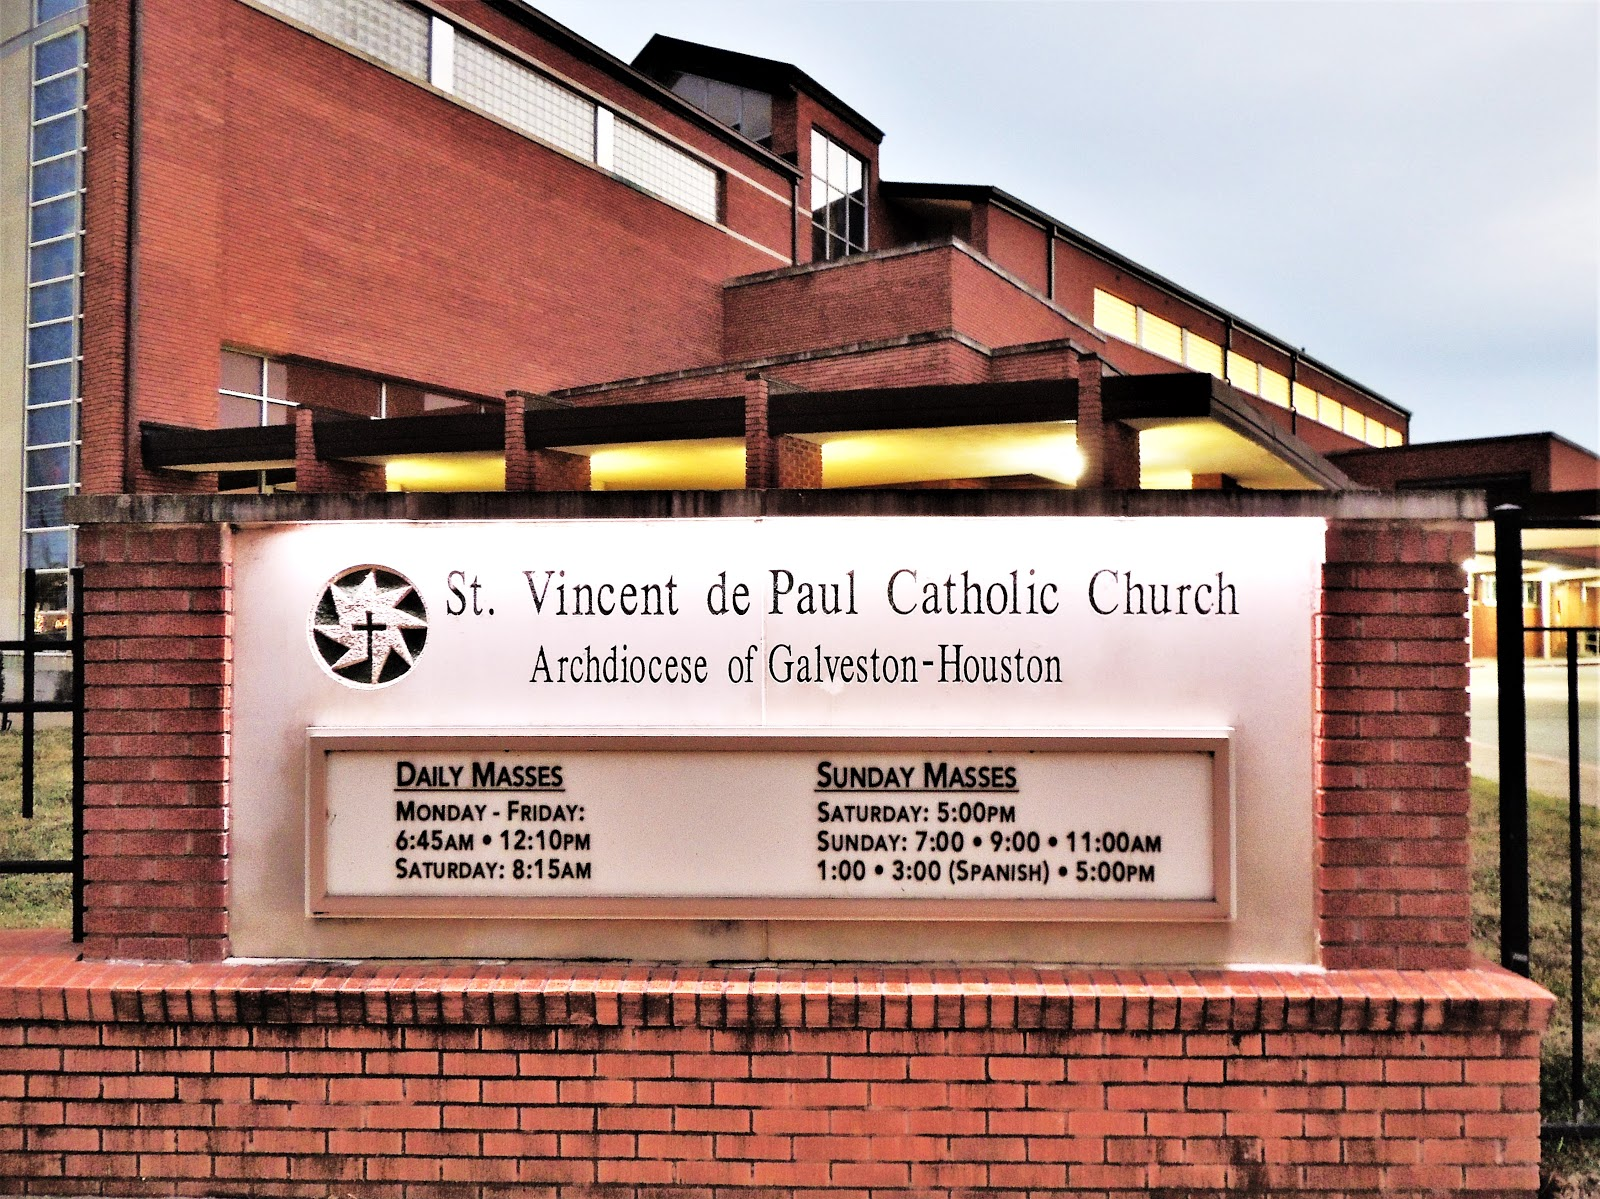 catholic singles in south houston Churches with singles groups in houston on ypcom  14011 south fwy houston, tx 77047 (713)  st john vianney catholic church offers a wide range of programs.